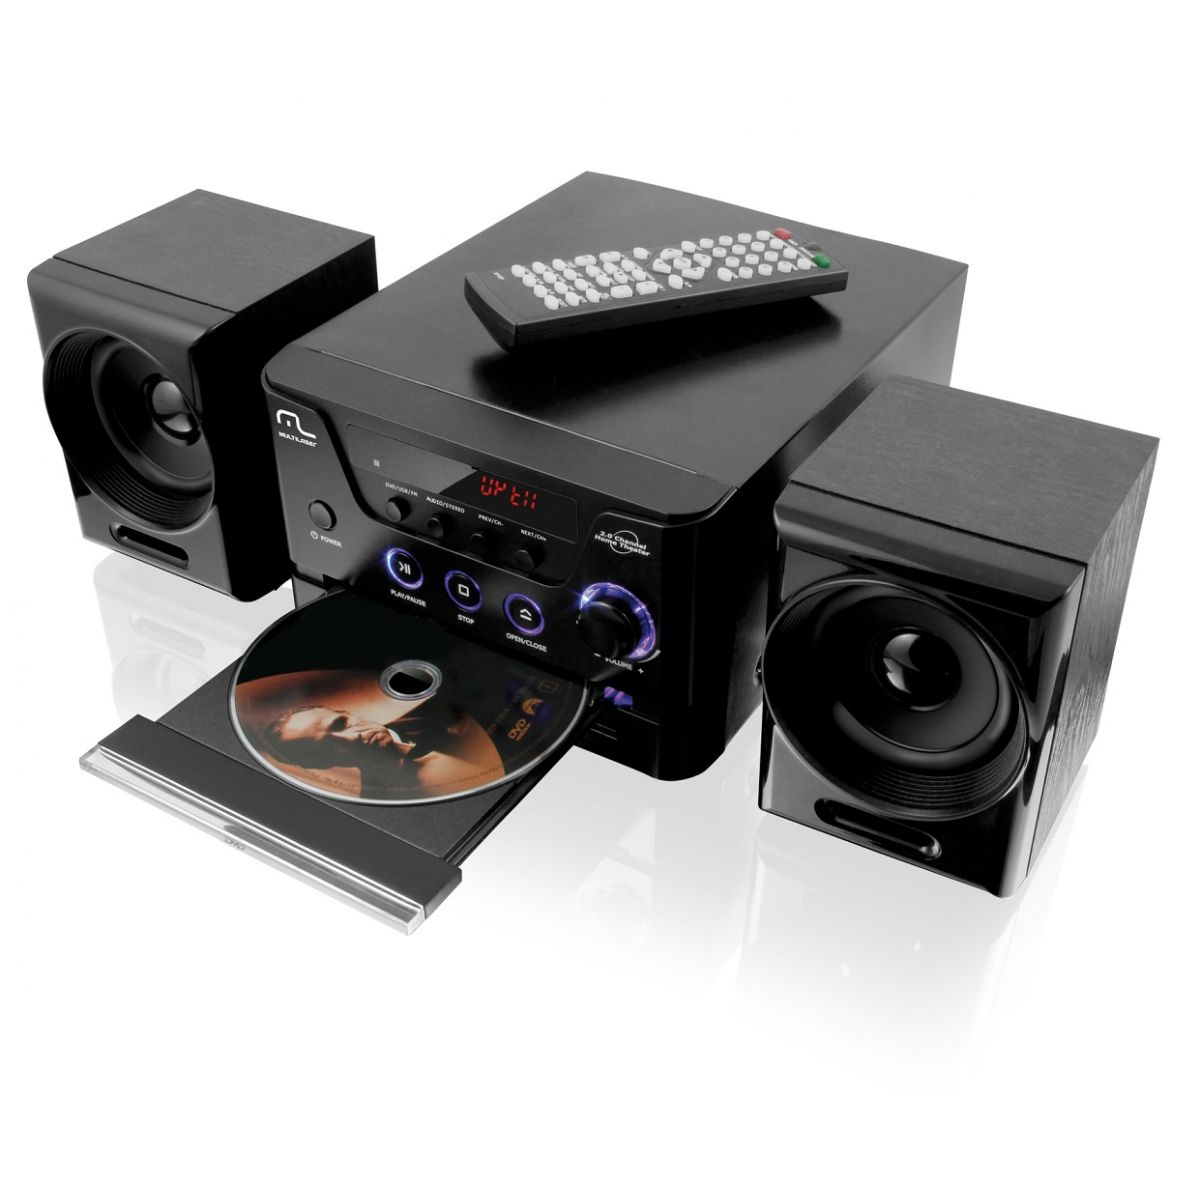 Caixa de Som Mini System com DVD/CD Player/USB/FM 30W RMS SP141 - Multilaser